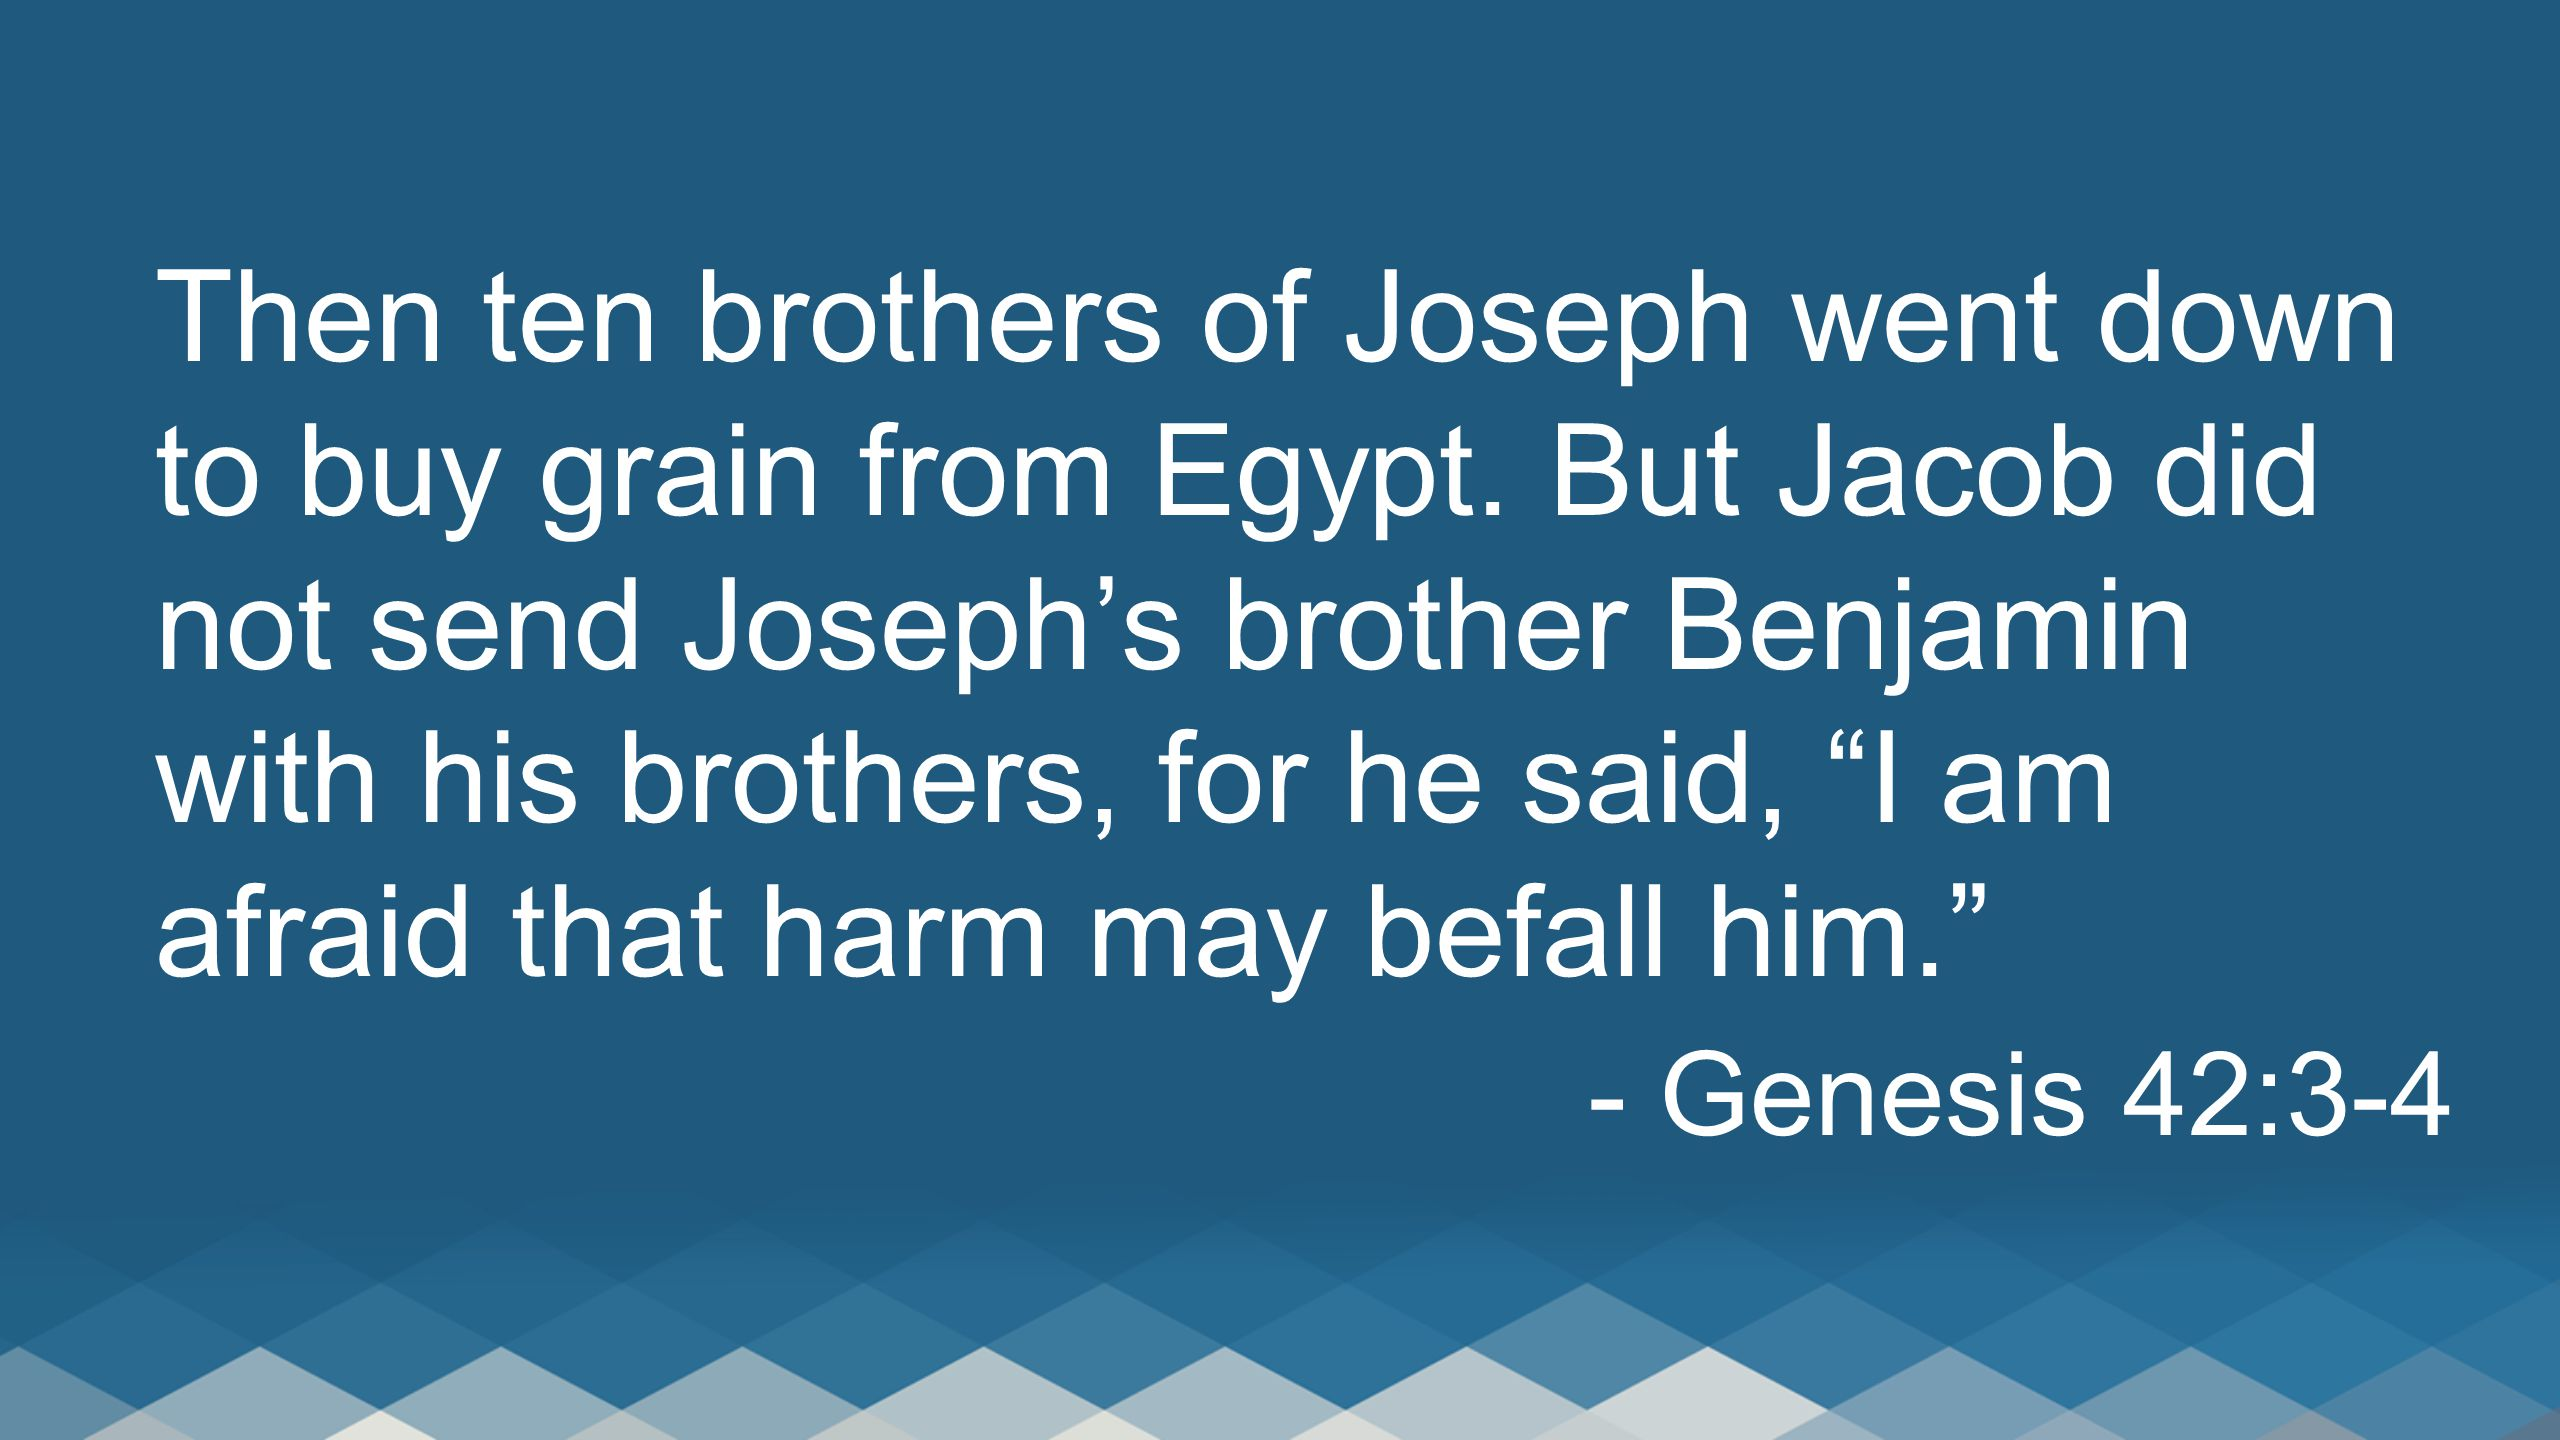 Then ten brothers of Joseph went down to buy grain from Egypt